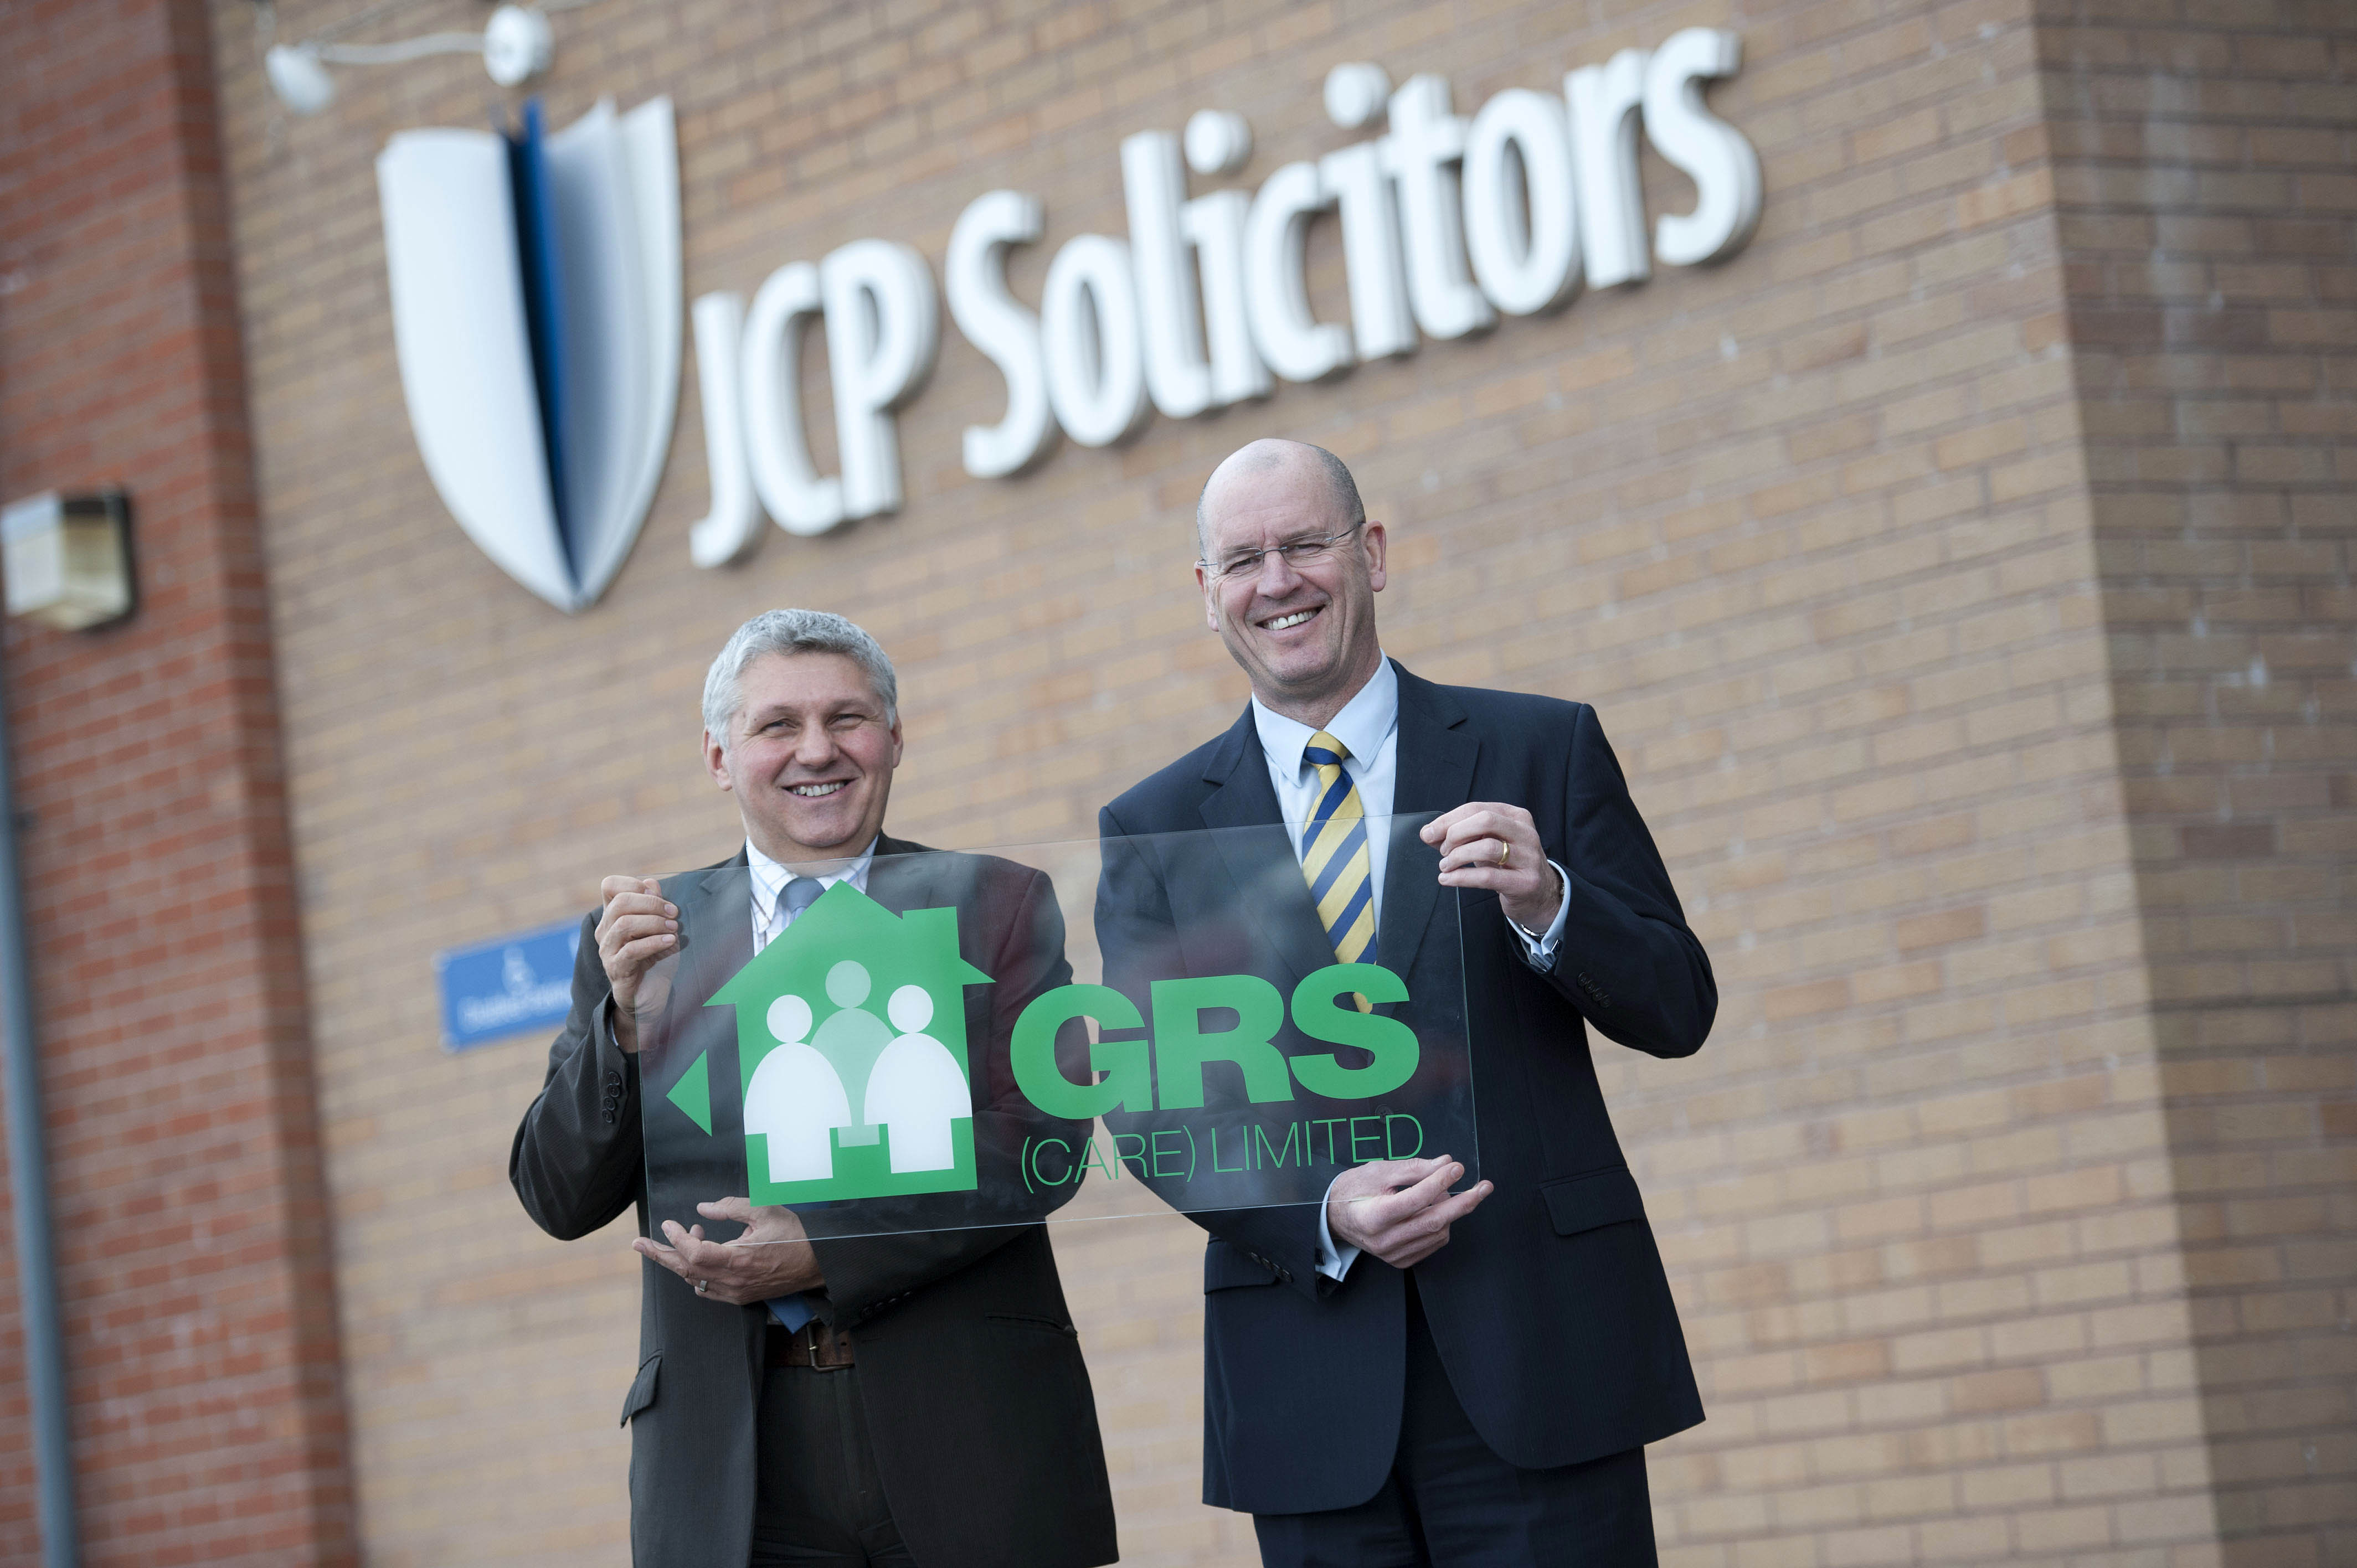 Chris Davies, Director at JCP Solicitors and Dave Howells, Director at GRS Care Ltd.